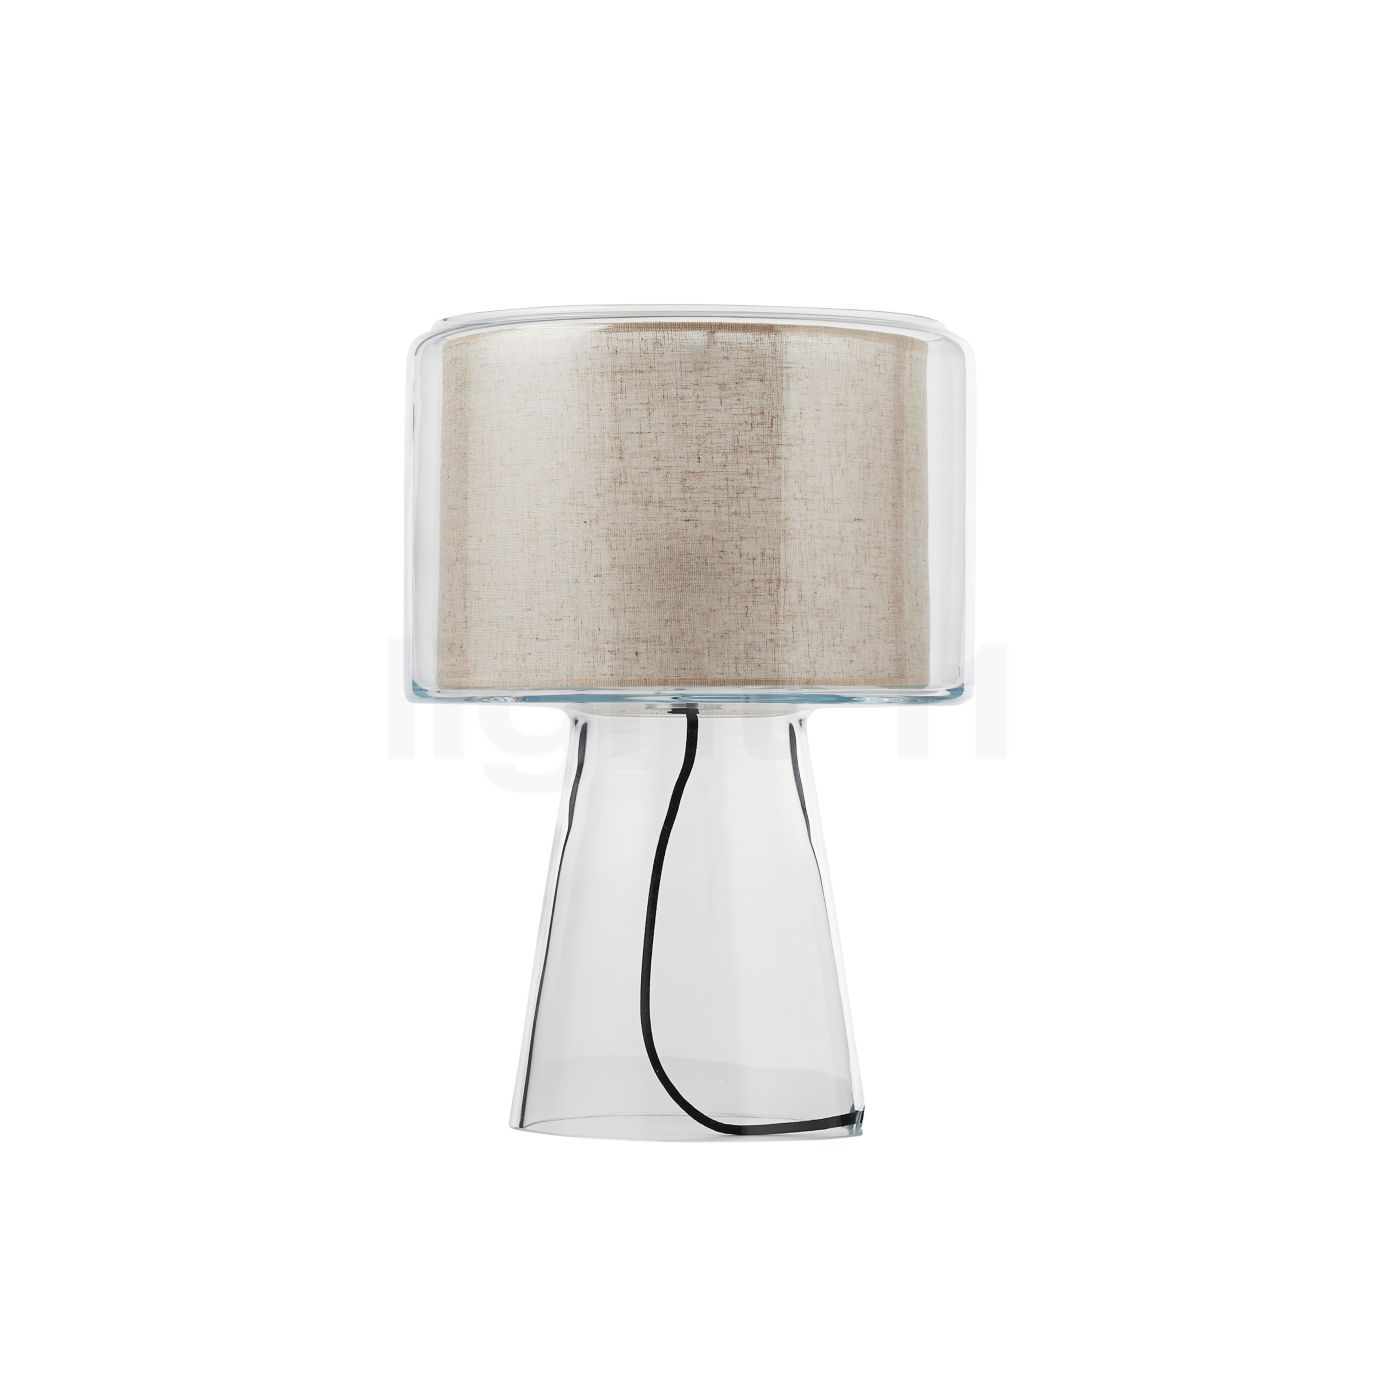 low brown platform gold light wooden of ball shape table with tiny lamps mini profile stands astounding white finished shade have above lamp